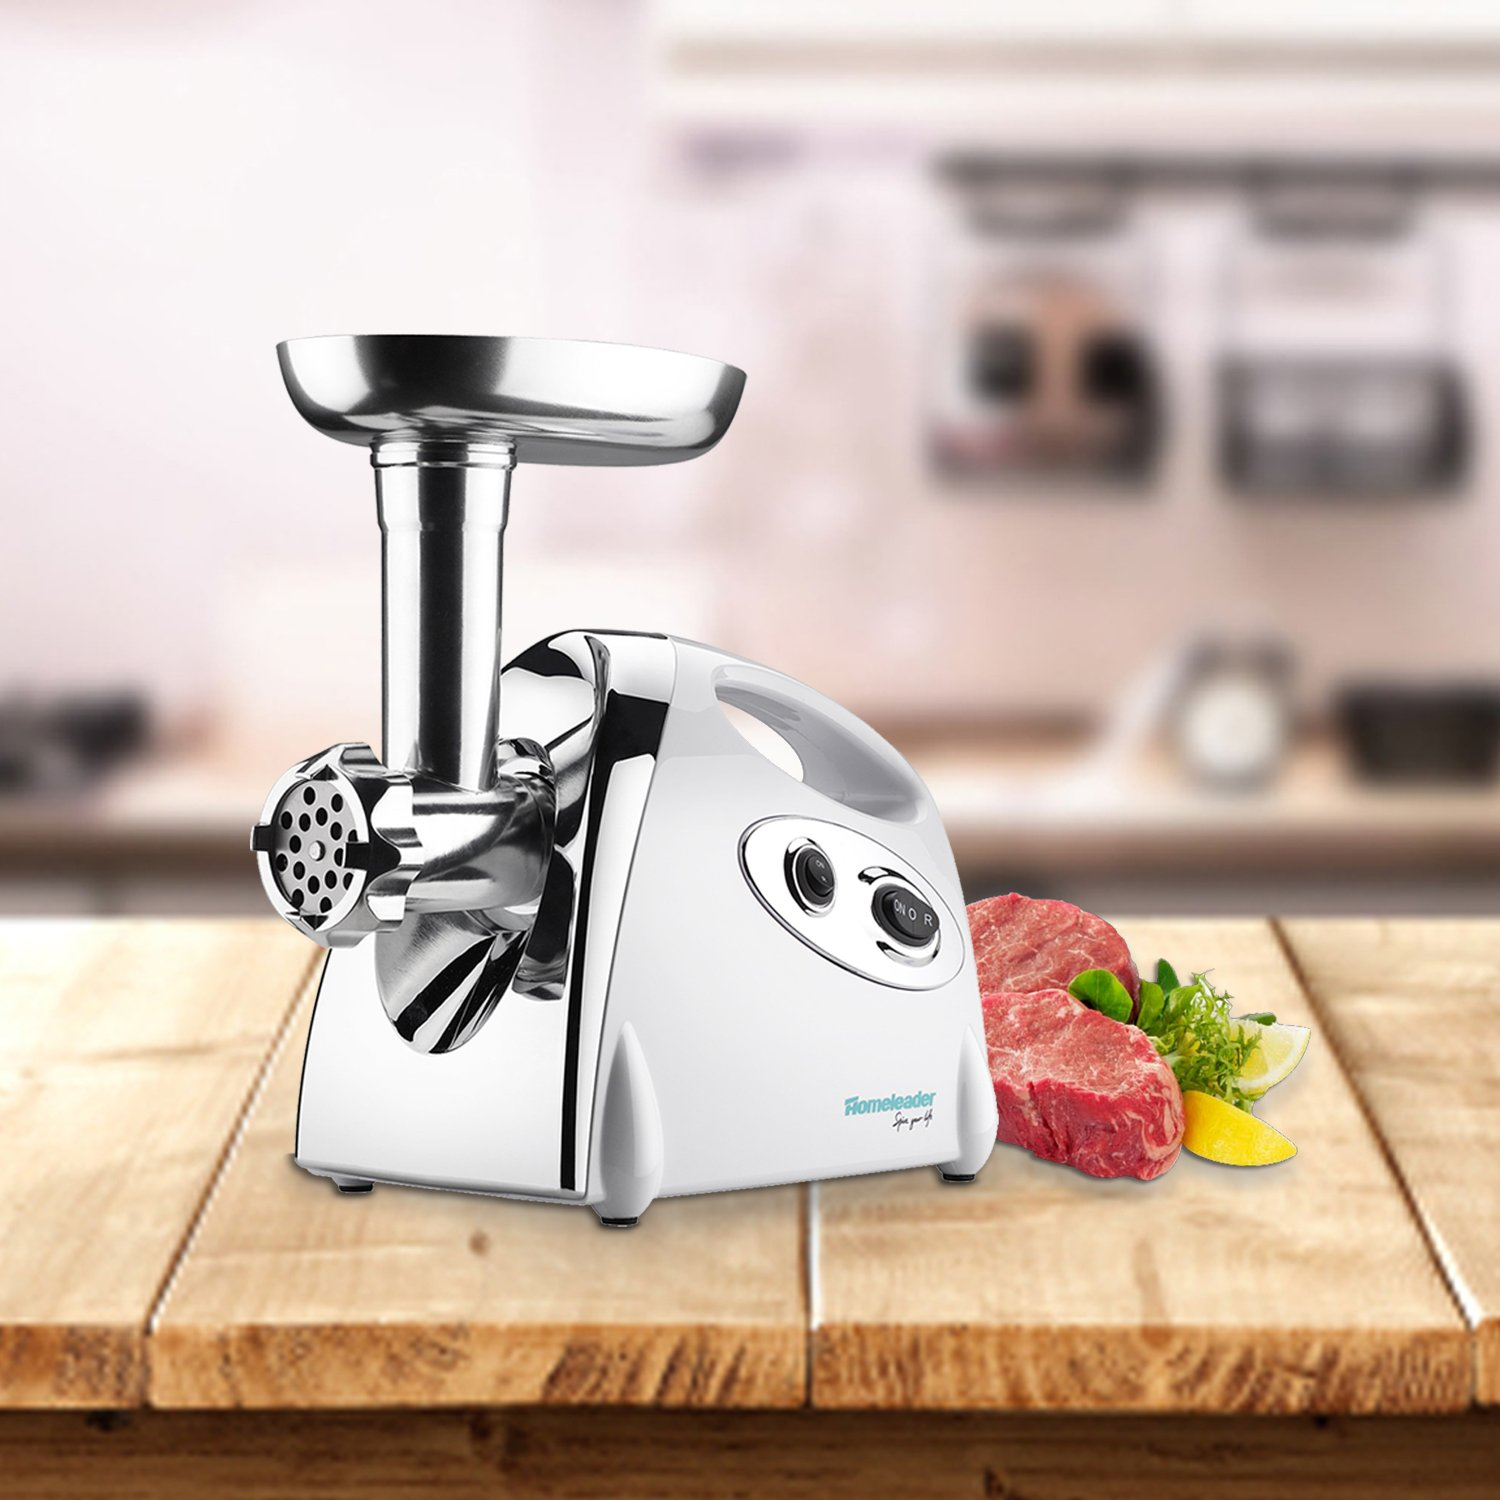 Big Capacity Stainless Steel With 3 Grinding Plates 800w ETL Approved Homeleader Meat Grinder Sausage Maker with Reverse Function